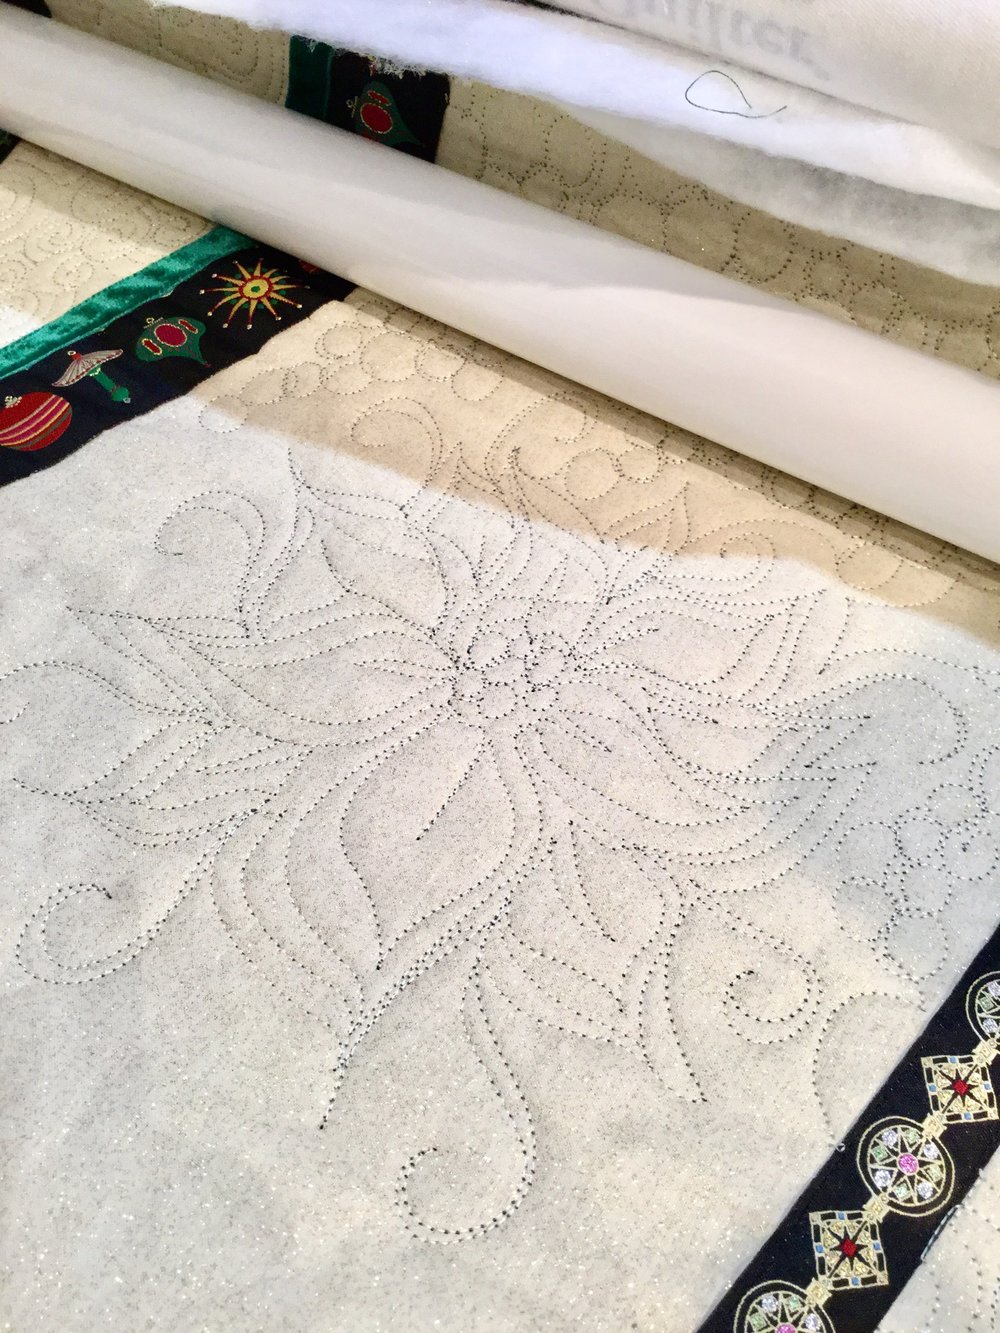 Free motion quilting on a custom Christmas project